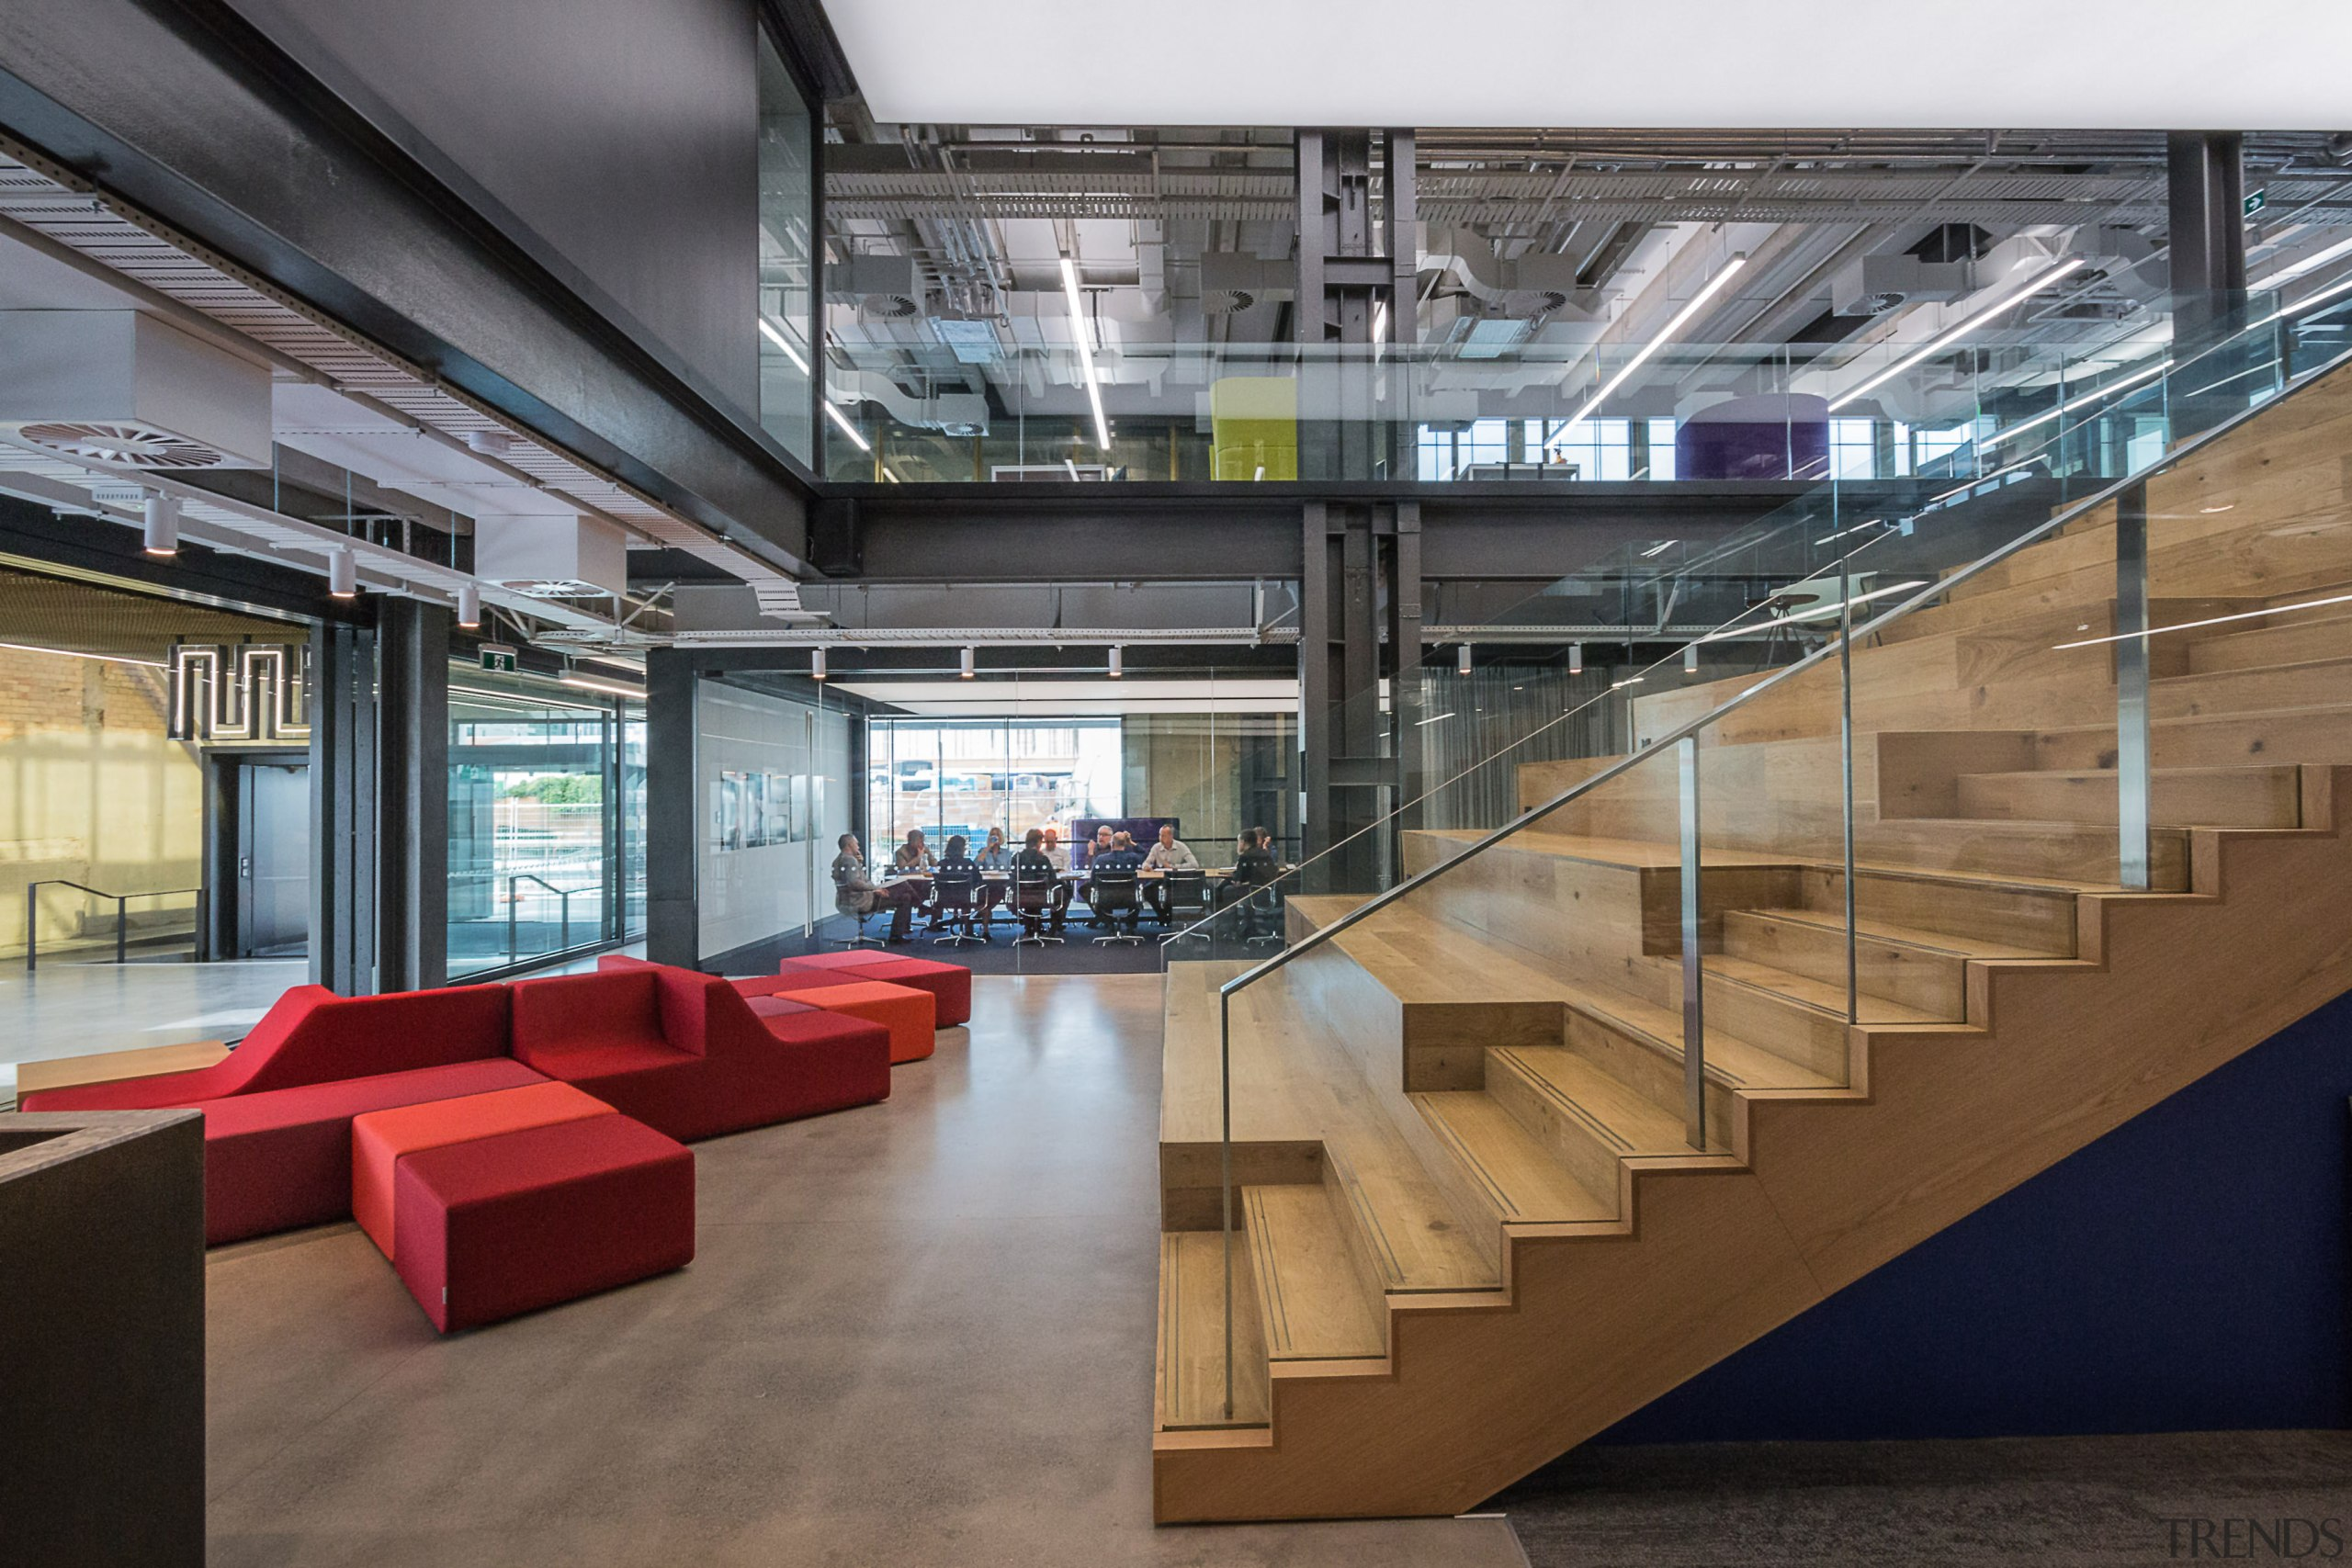 The central wood auditorium staircase in architects Warren architecture, daylighting, institution, interior design, lobby, gray